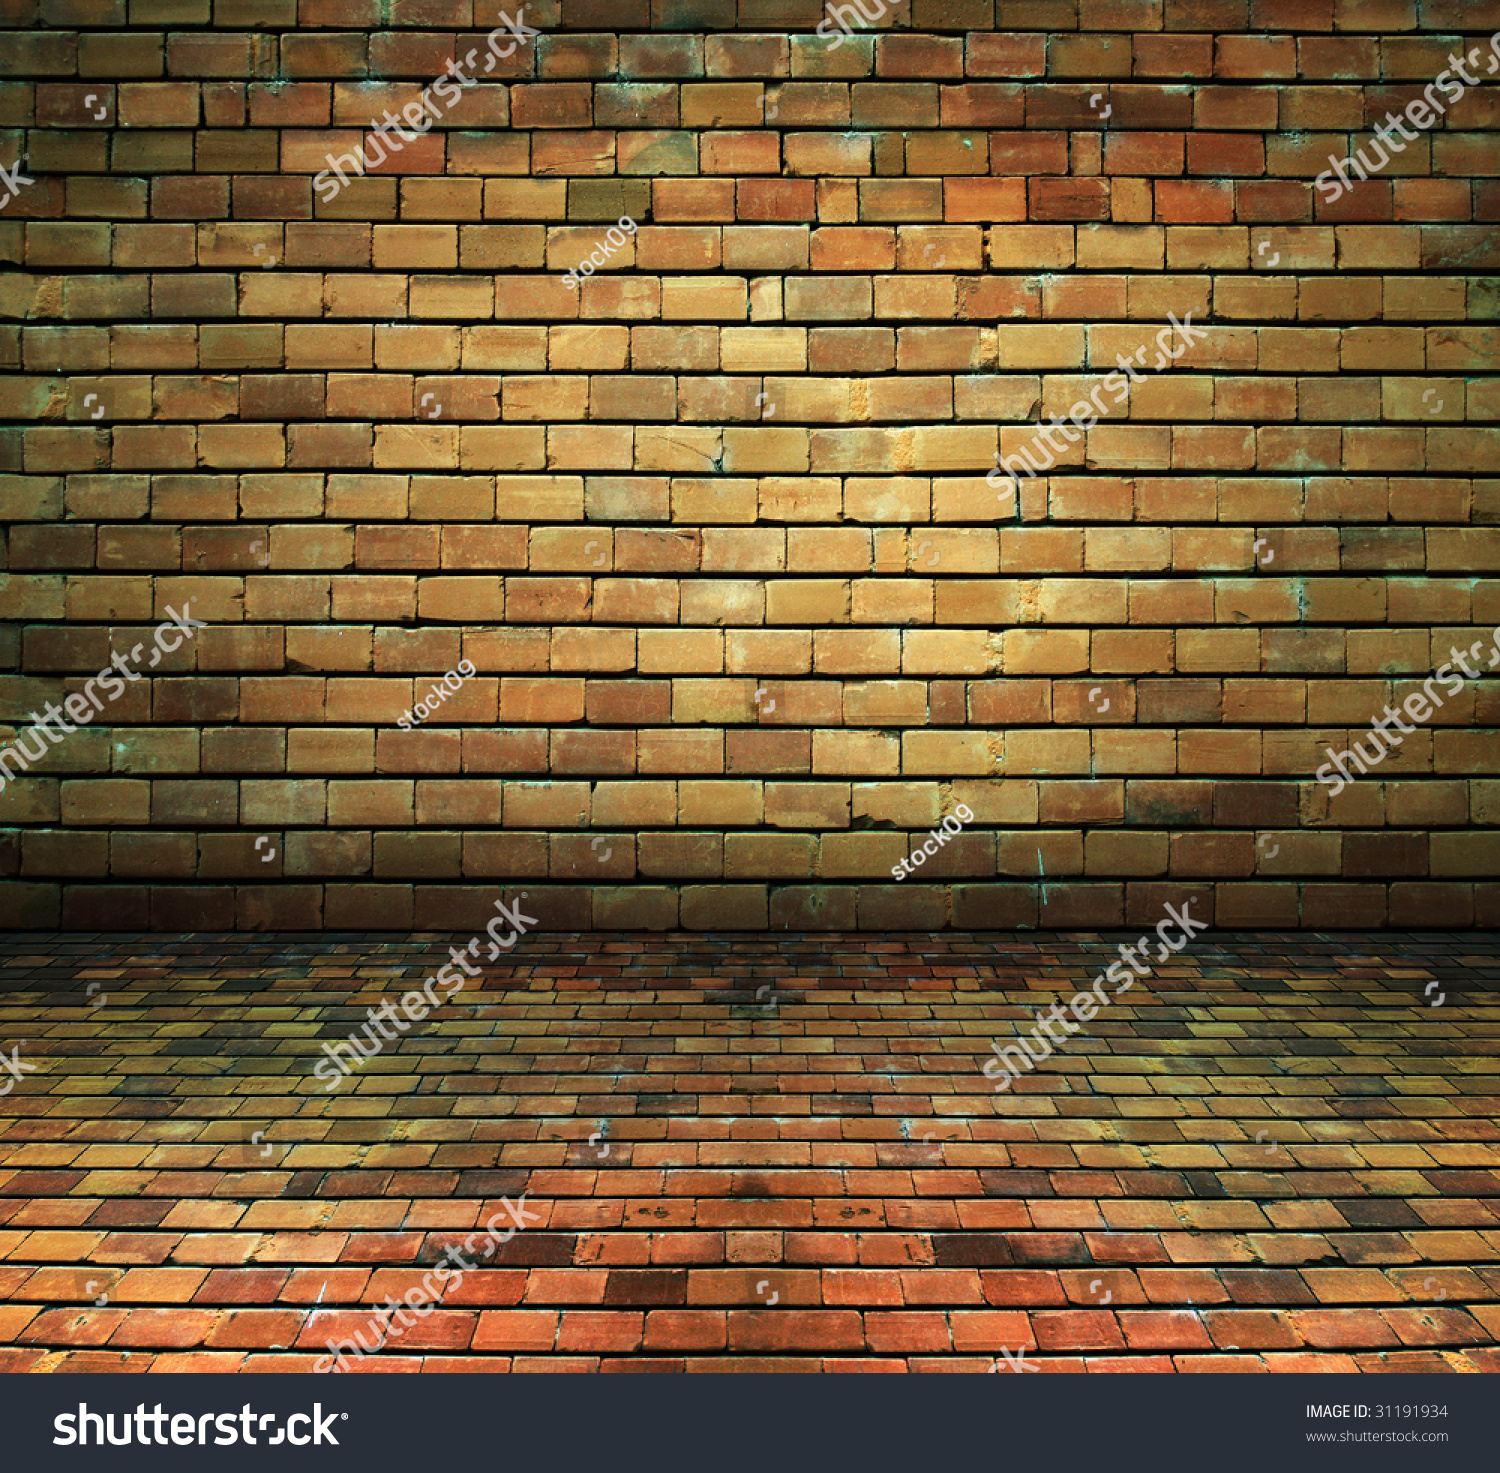 brick house interior basement background texture stock photo